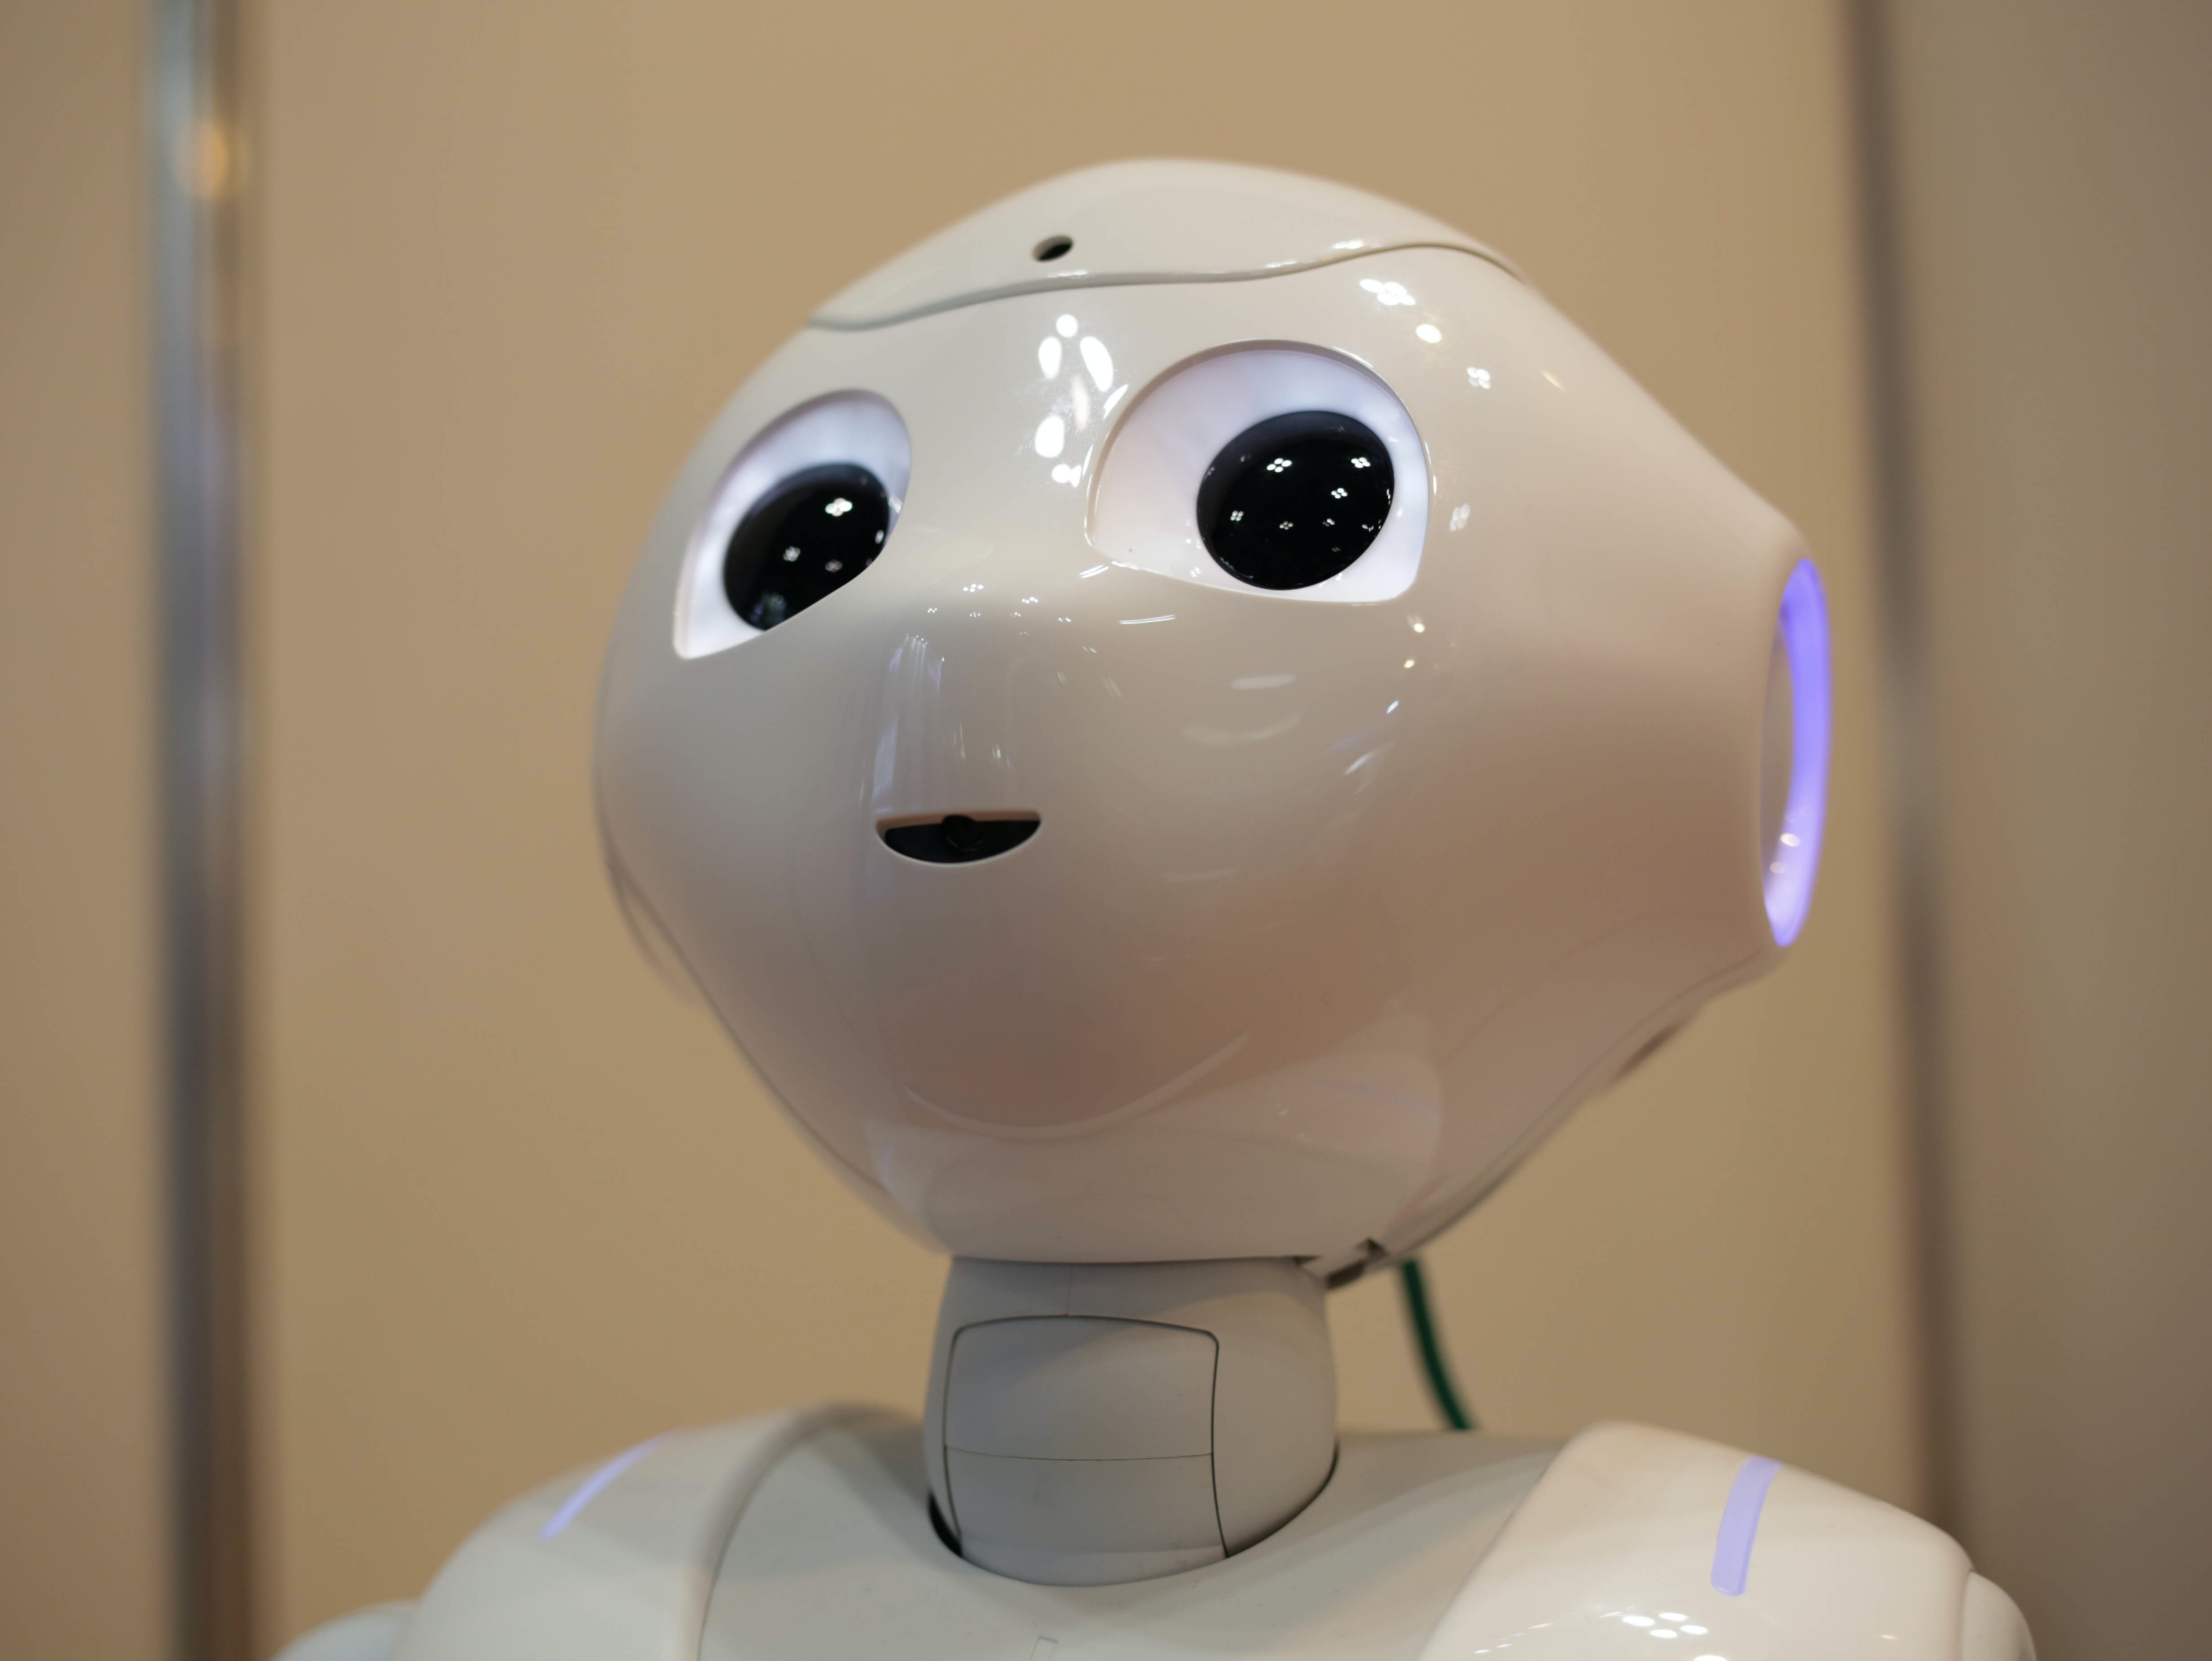 Tokyo Japan October 19 Pepper Robot Developed By Softbank Talks To The Guests During Rect 304 Dpr Auto Format Compress 75 Linkedin Founder Reid Hoffman